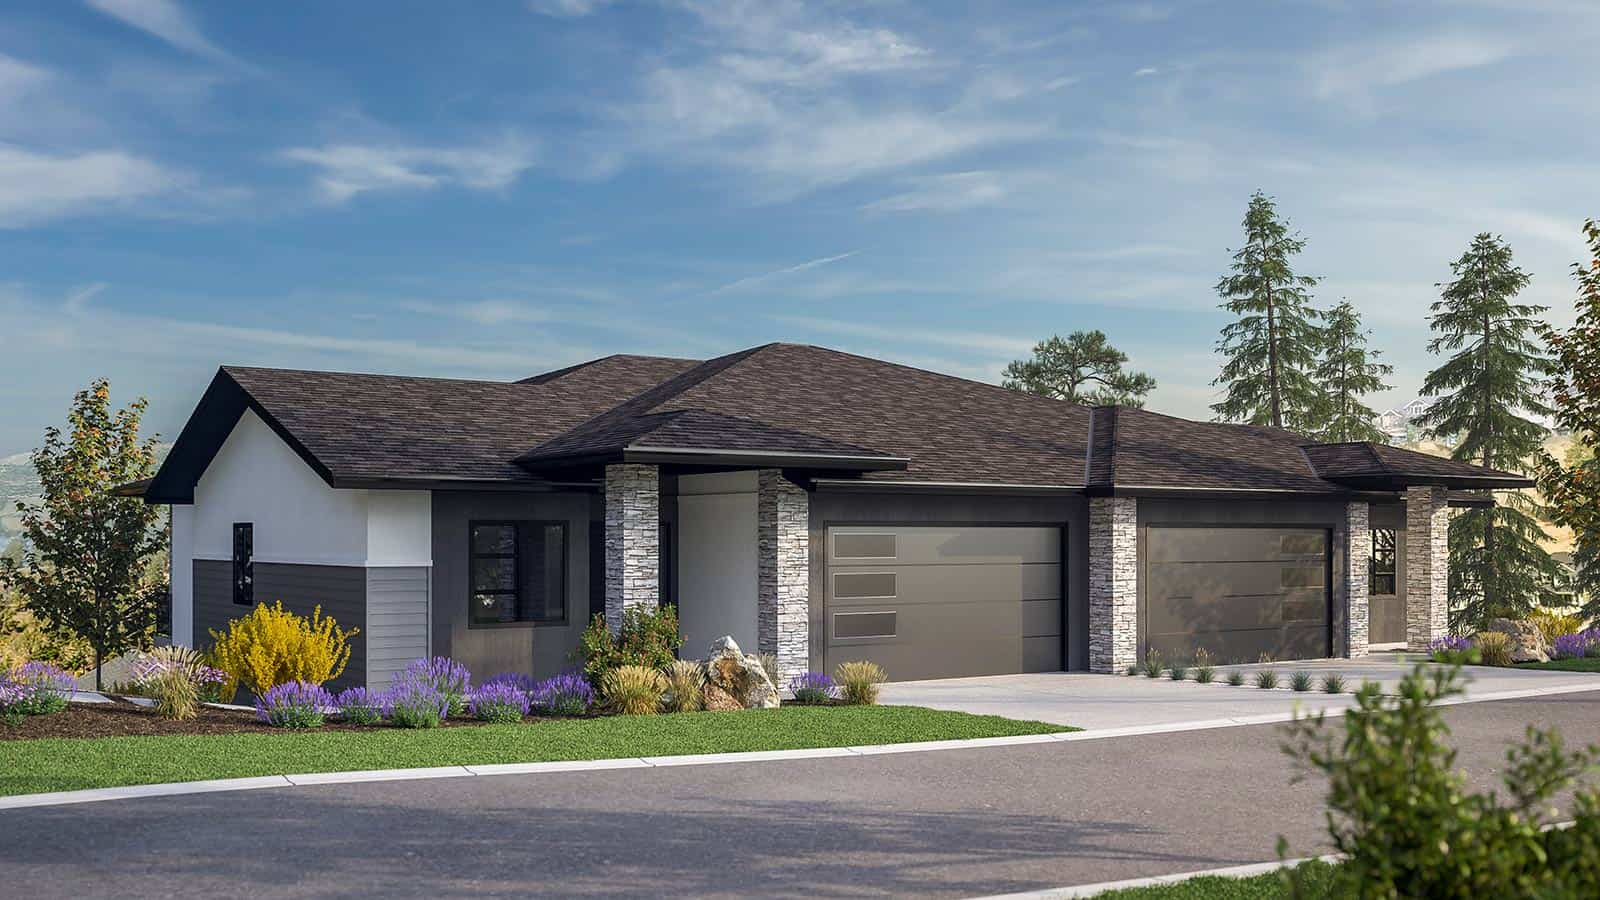 Lost Creek Point Townhomes Staccato Unit Rendering